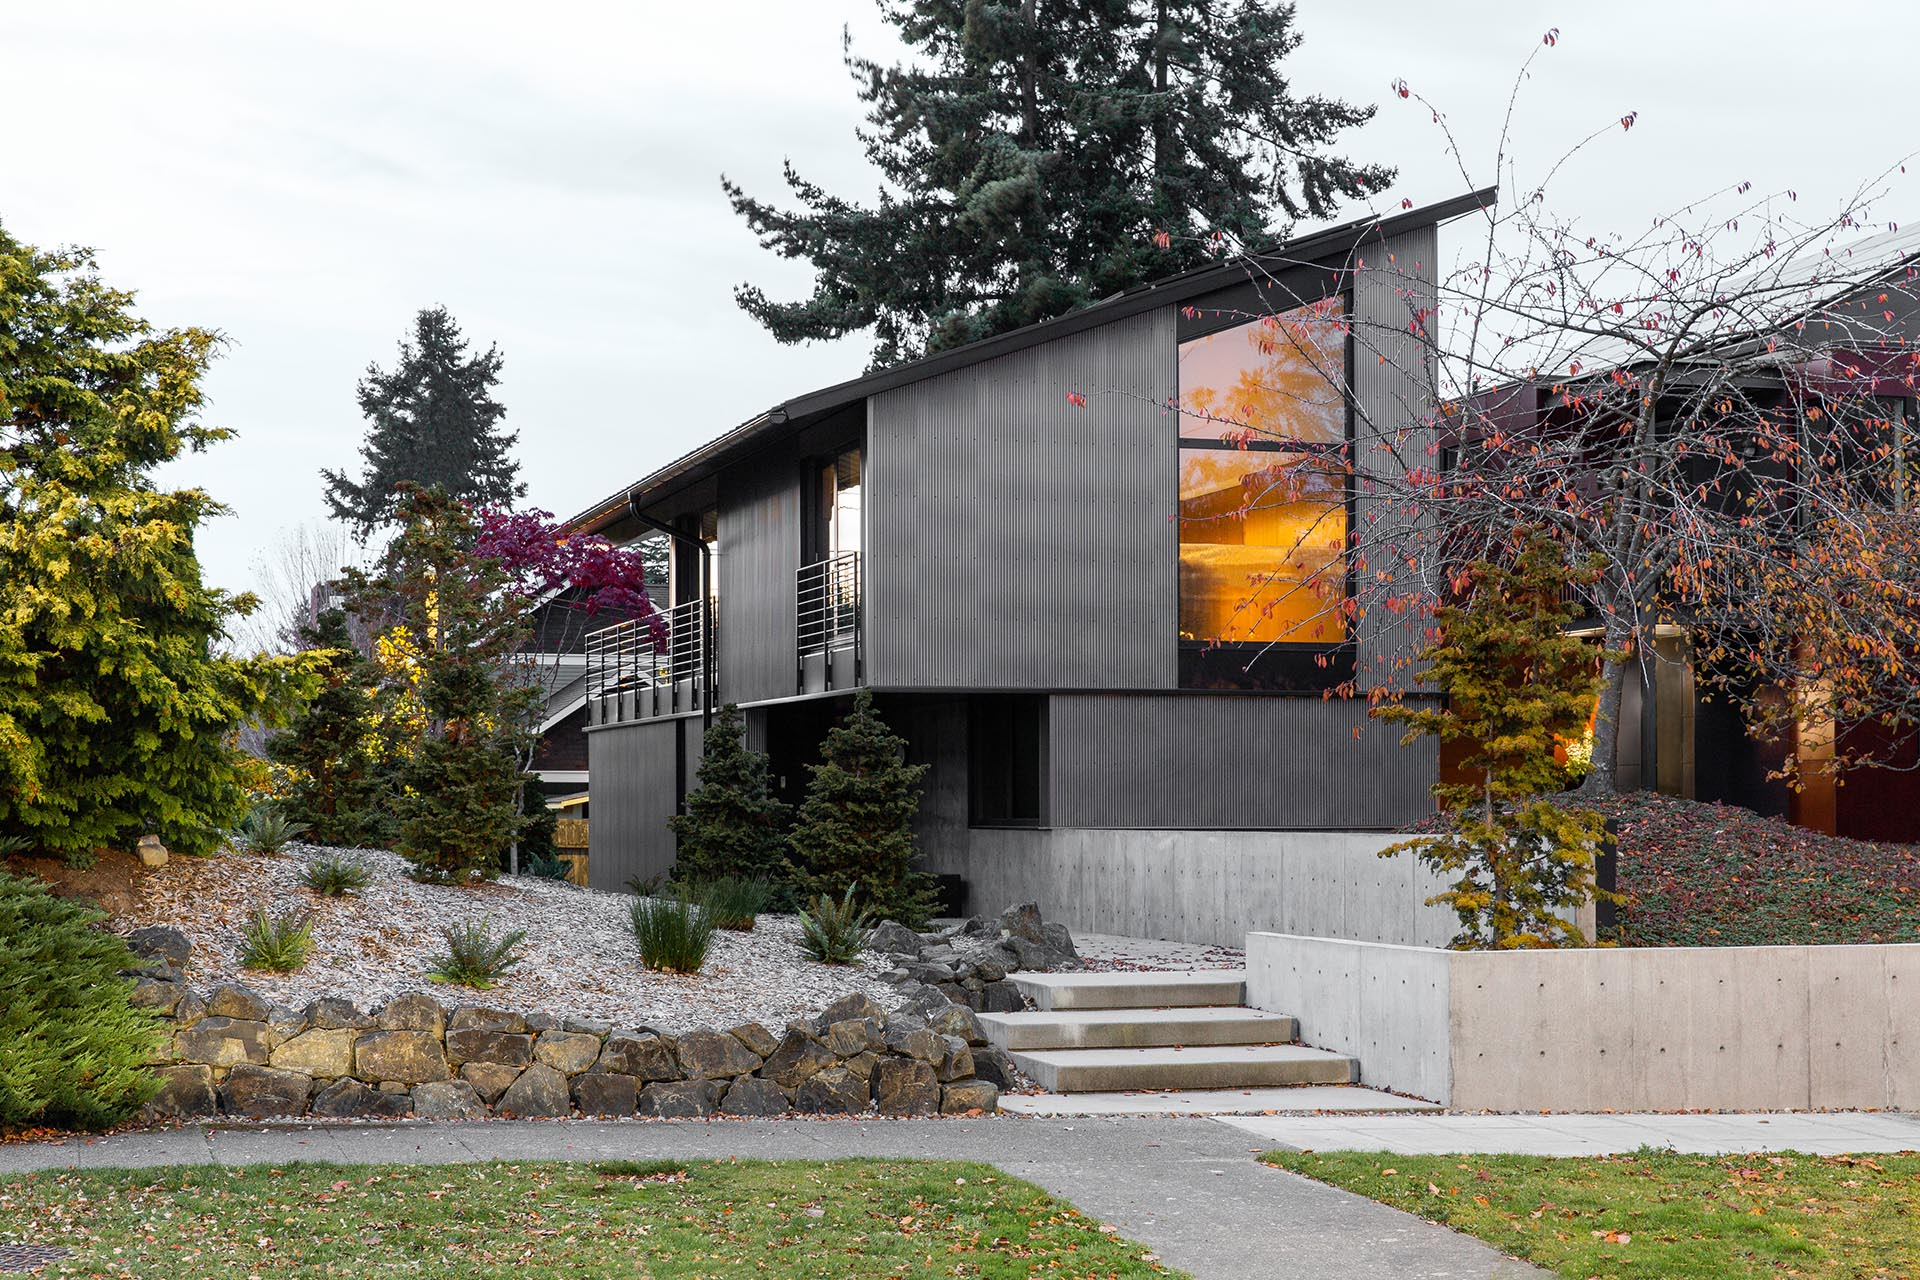 A shed roof and metal siding create a modern house.